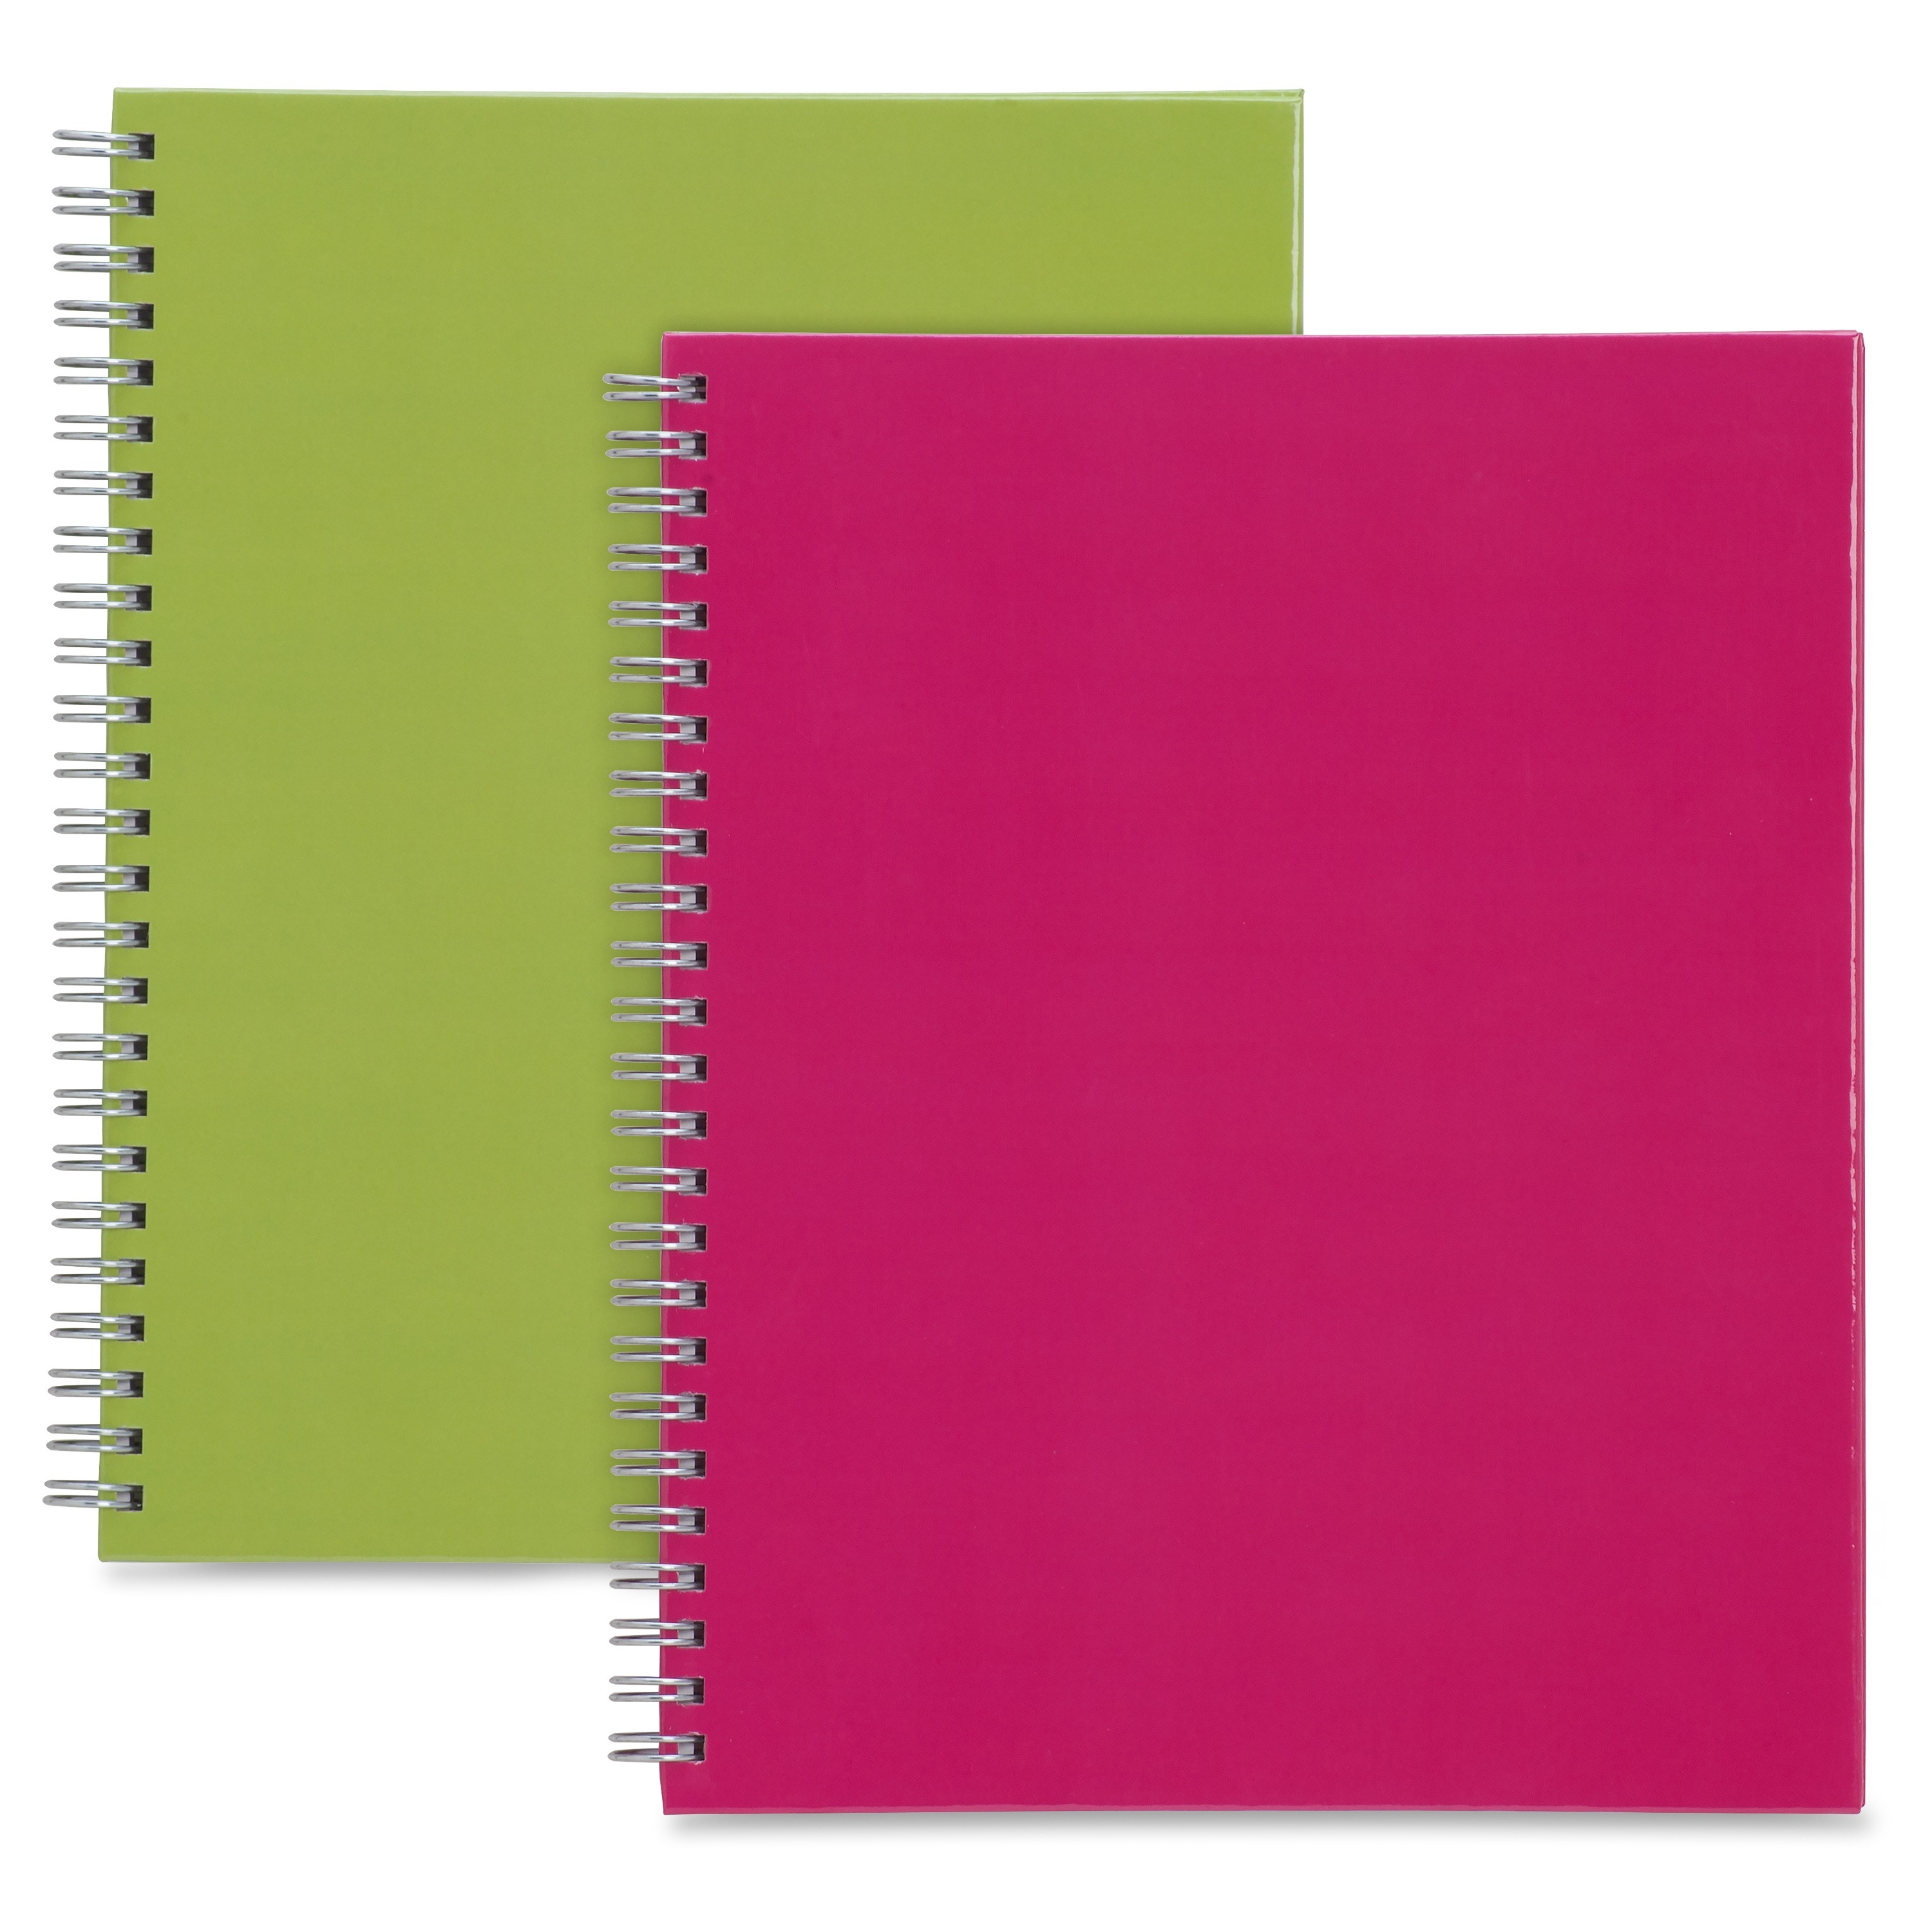 Sparco Twin-wire Professional-style Notebook - 80 Page - Ruled - 2 / Pack Multi-colored Cover (spr-17710)